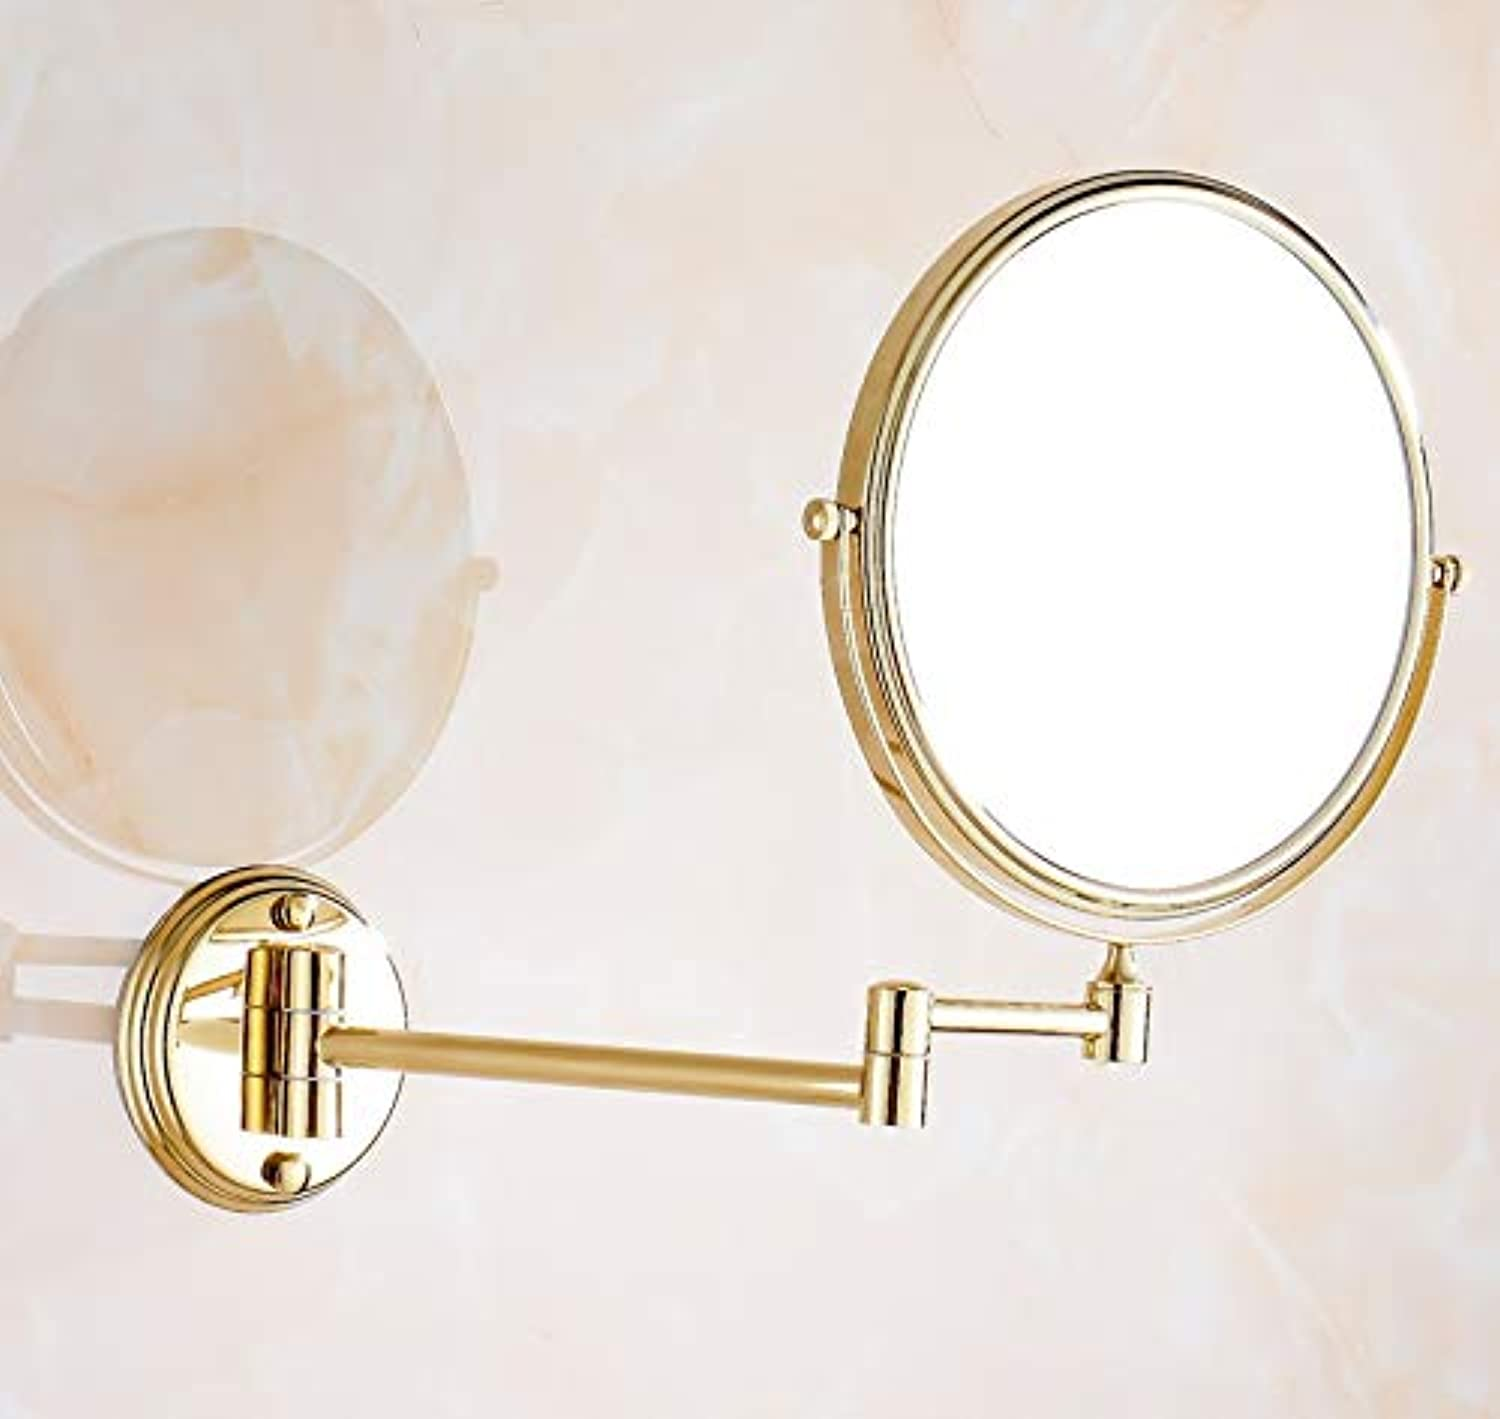 LUDSUY Bathroom Accessories Luxury gold color Brass 8 Bathroom Shaving Beauty Makeup Magnify Mirror Dual Side Wall Mounted ∕ Bathroom Accessory